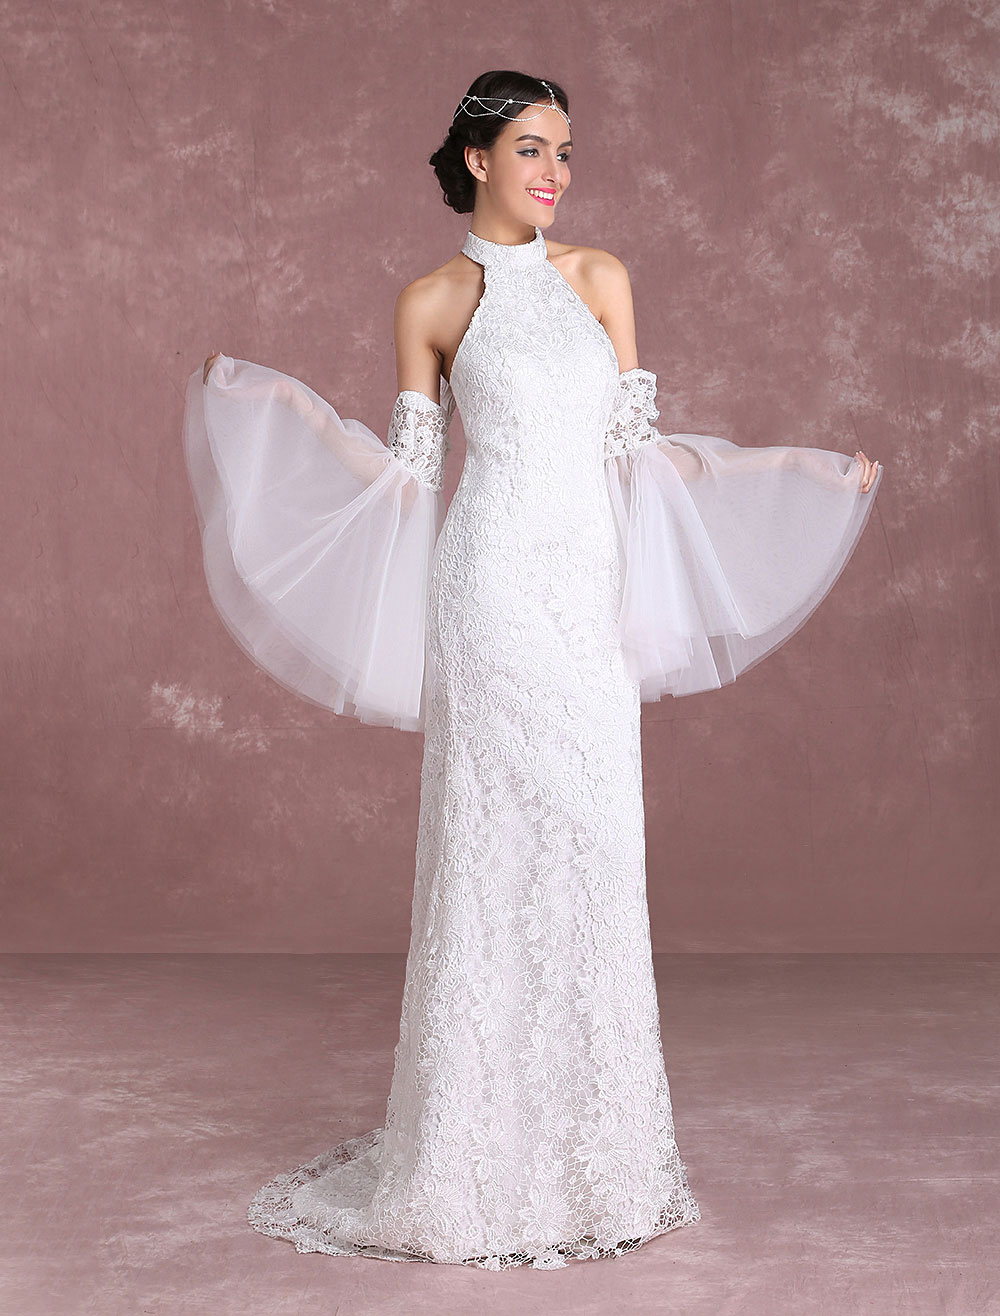 Boho wedding dresses 2018 lace beach summer bridal dress halter boho wedding dresses 2018 lace beach summer bridal dress halter mermaid bell sleeve bridal gown with junglespirit Image collections